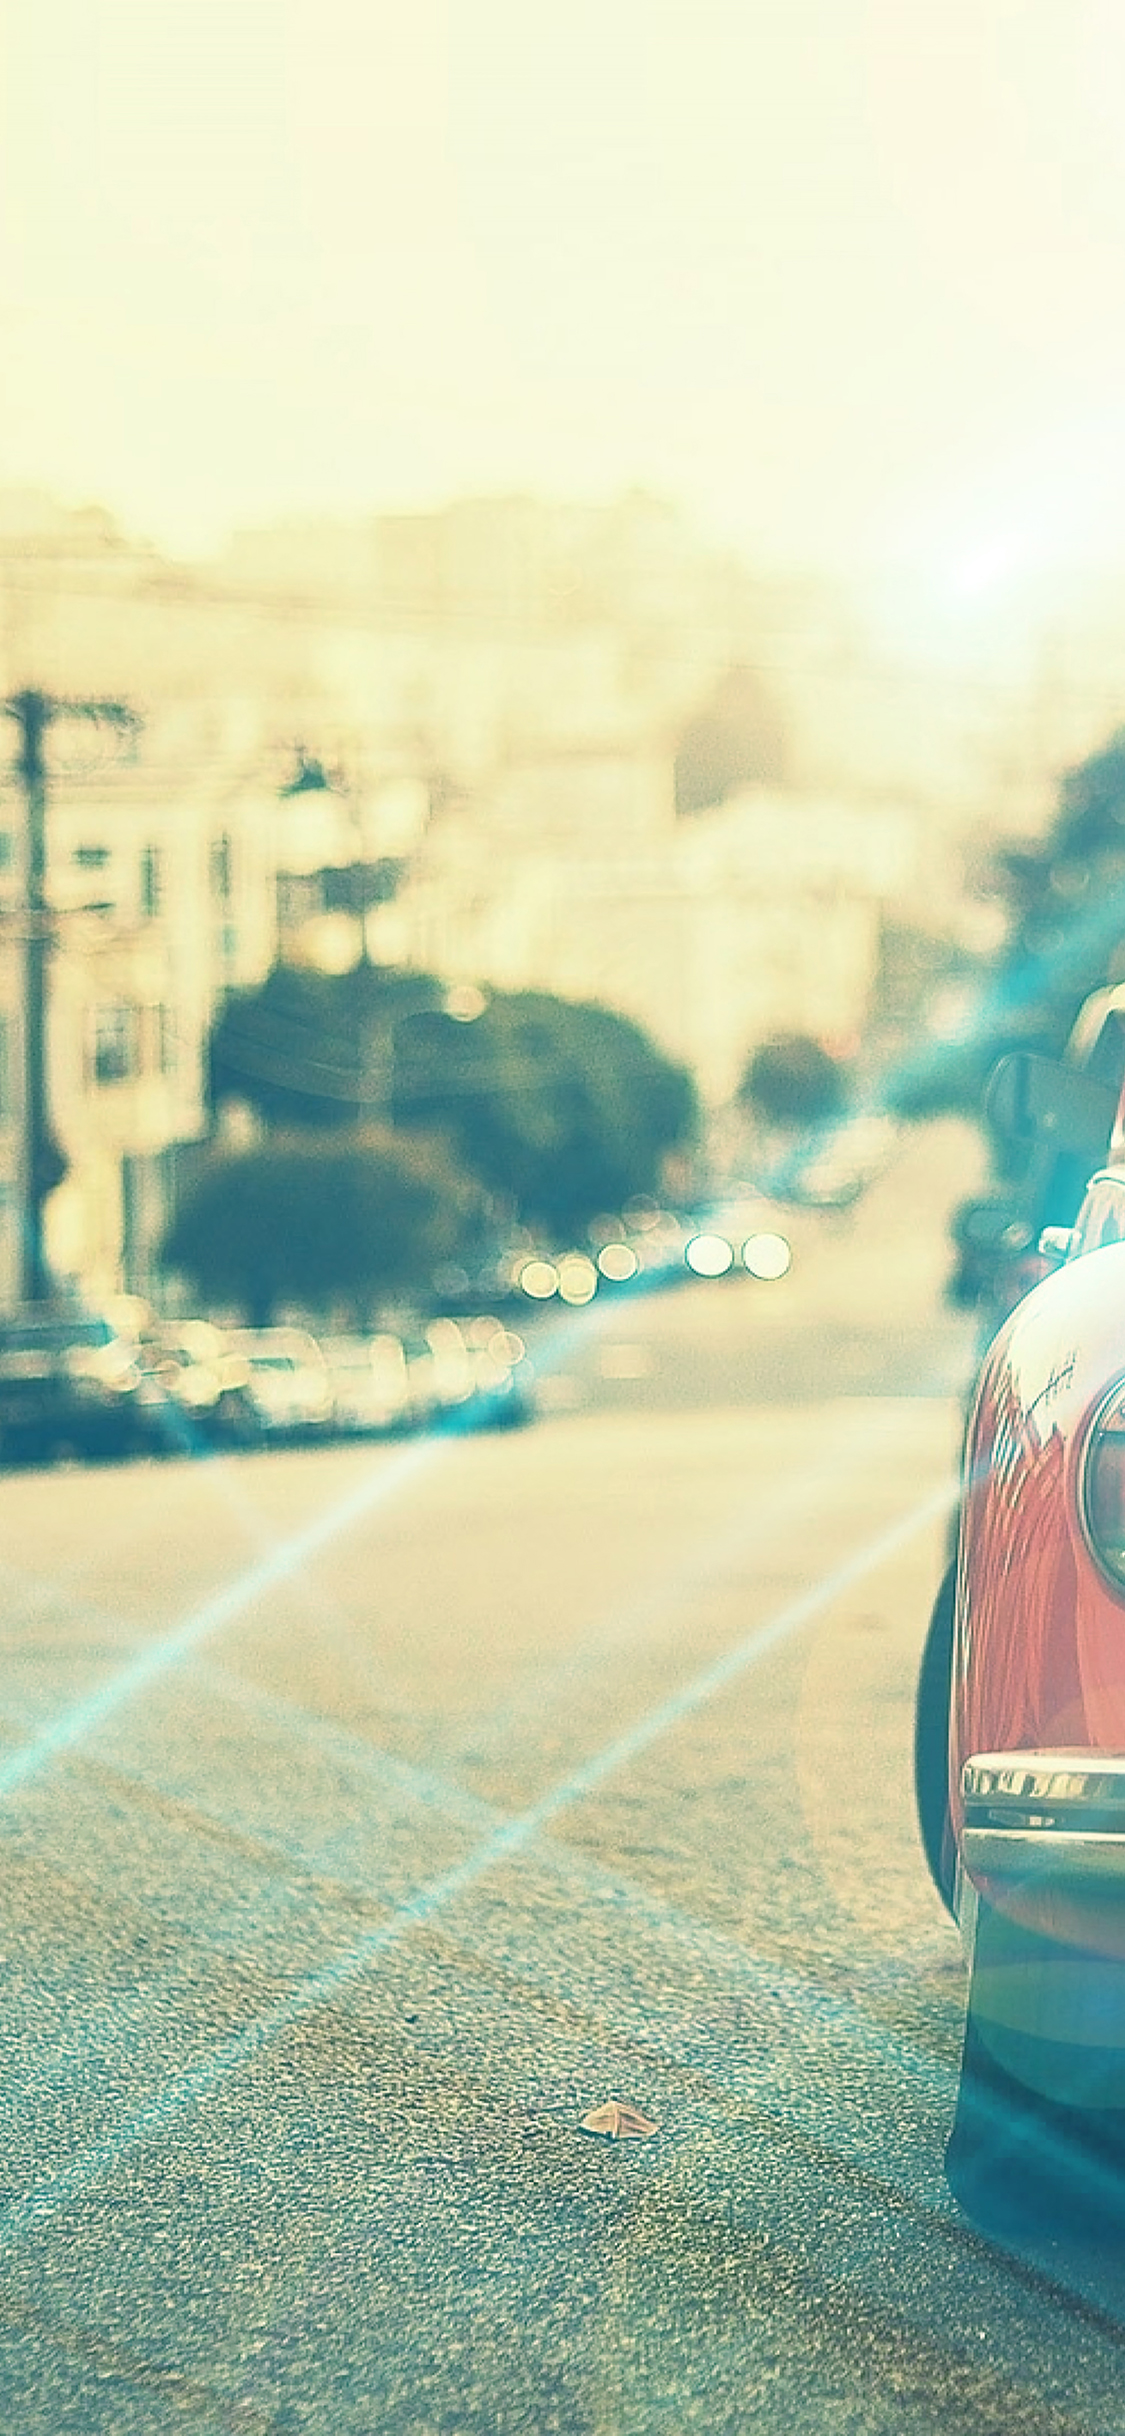 Papers Co Iphone Wallpaper Mm14 Old Car Street Vintage Flare